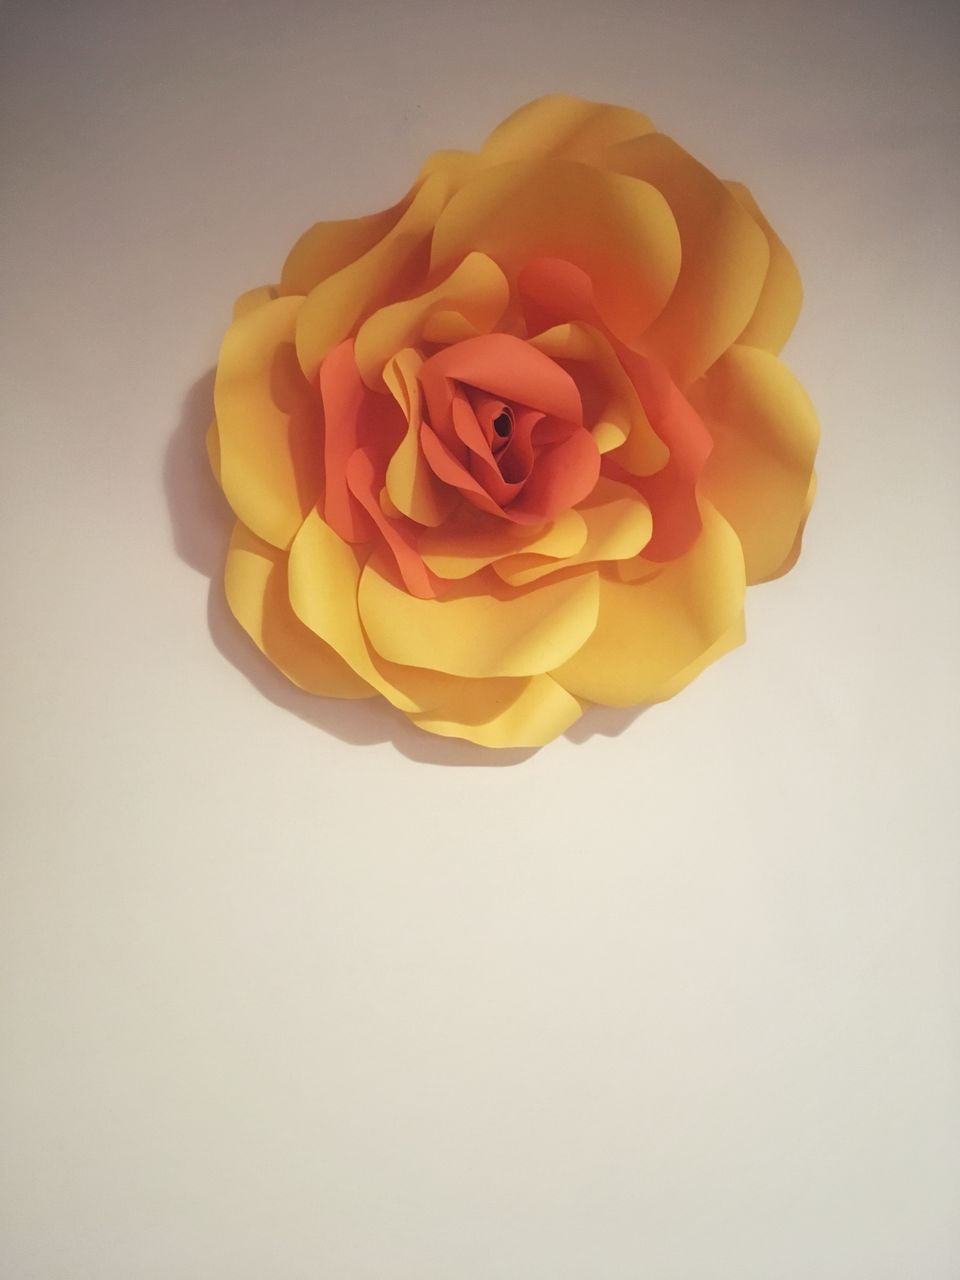 flower, flowering plant, beauty in nature, studio shot, plant, rose, petal, freshness, inflorescence, rose - flower, flower head, vulnerability, close-up, fragility, indoors, copy space, no people, yellow, white background, nature